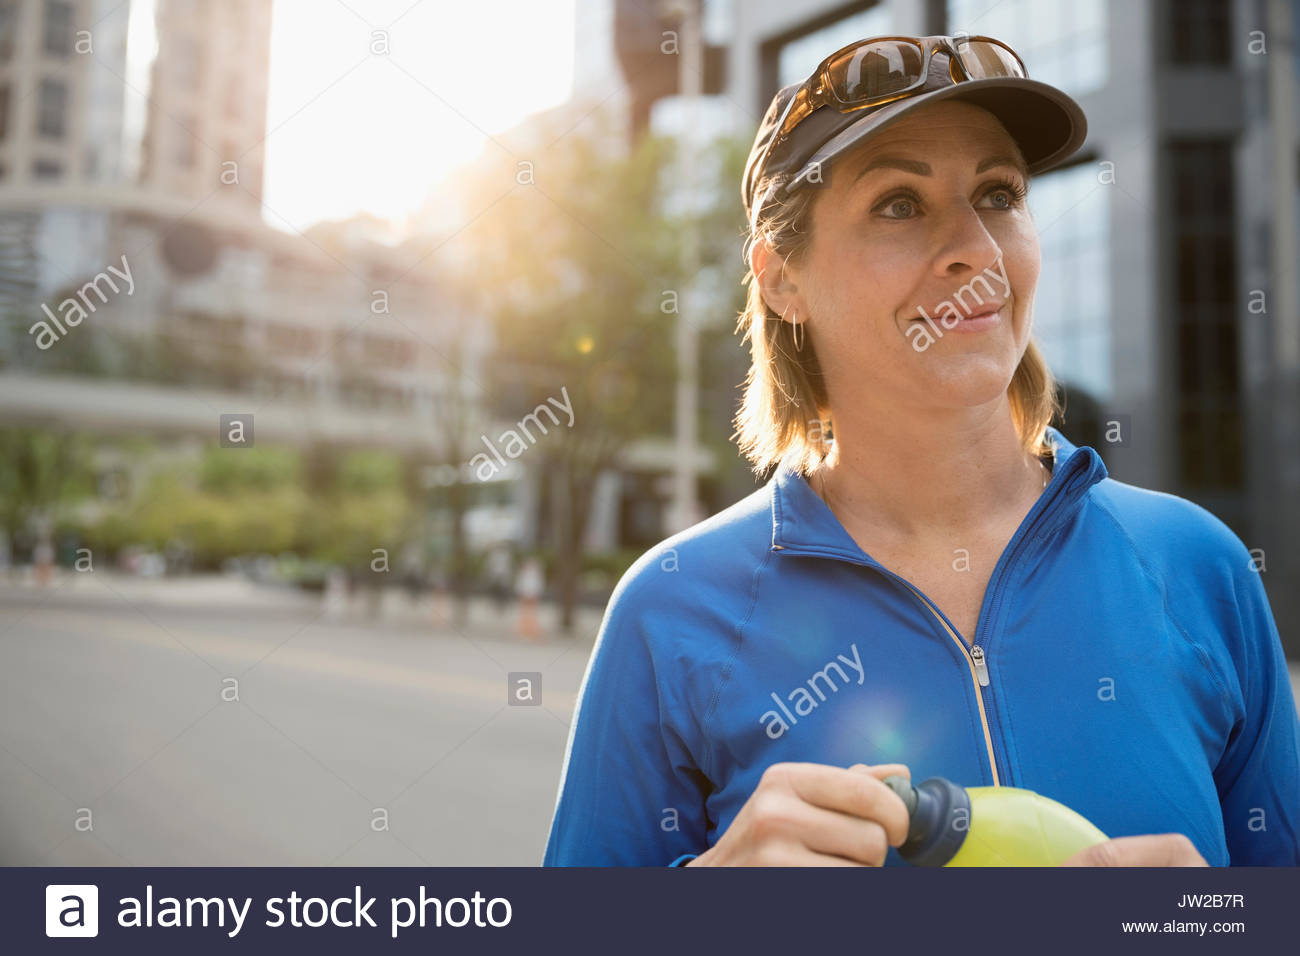 Mature female runner with water bottle on urban street - Stock Image